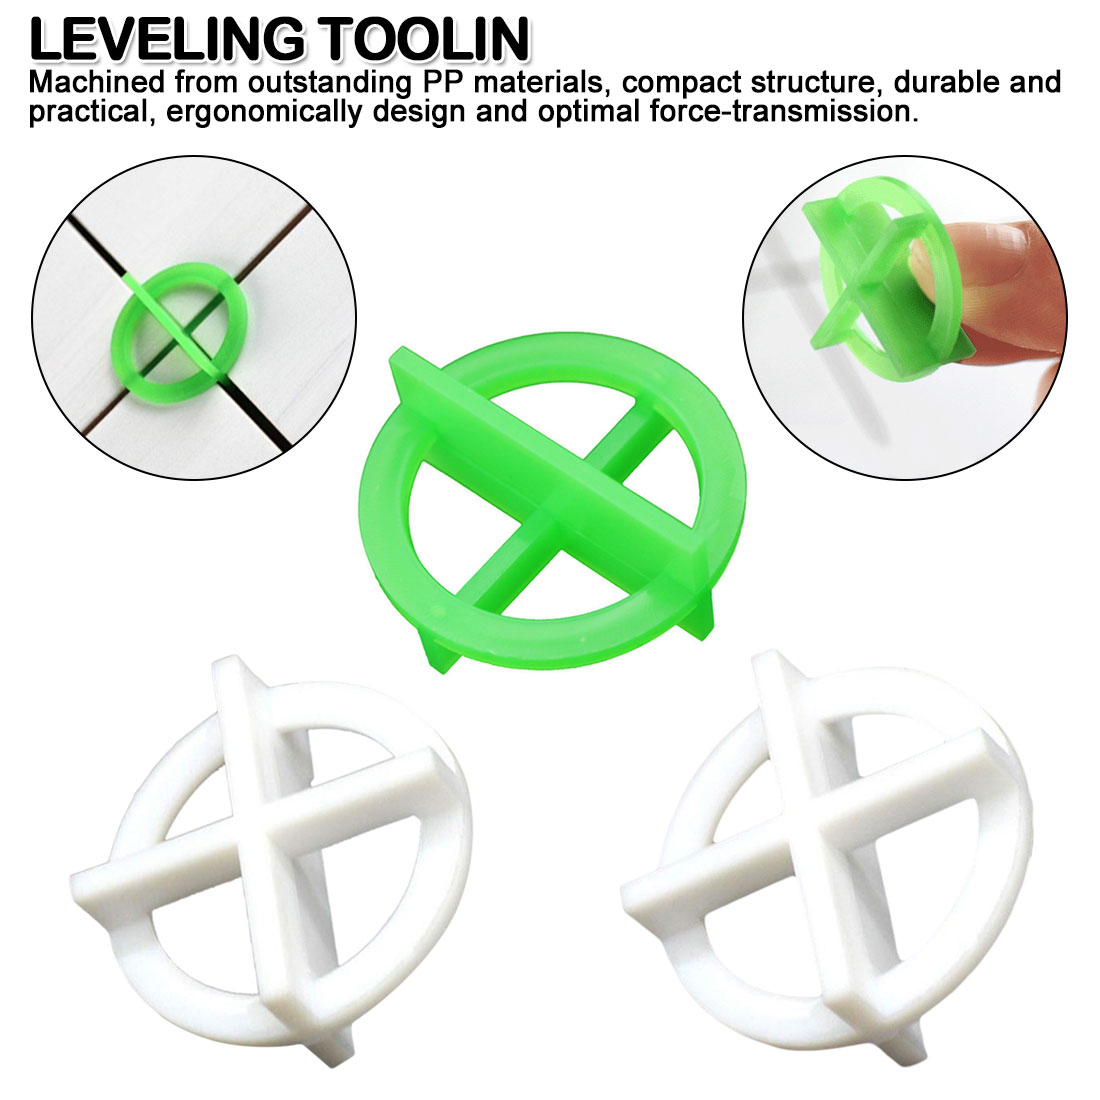 50pcs Plastic Leveling Spacer Base Tile System Leveling Green White Cross Tile Recyclable 1.5/2.0/3.0mm Cleaning Teeth Tools